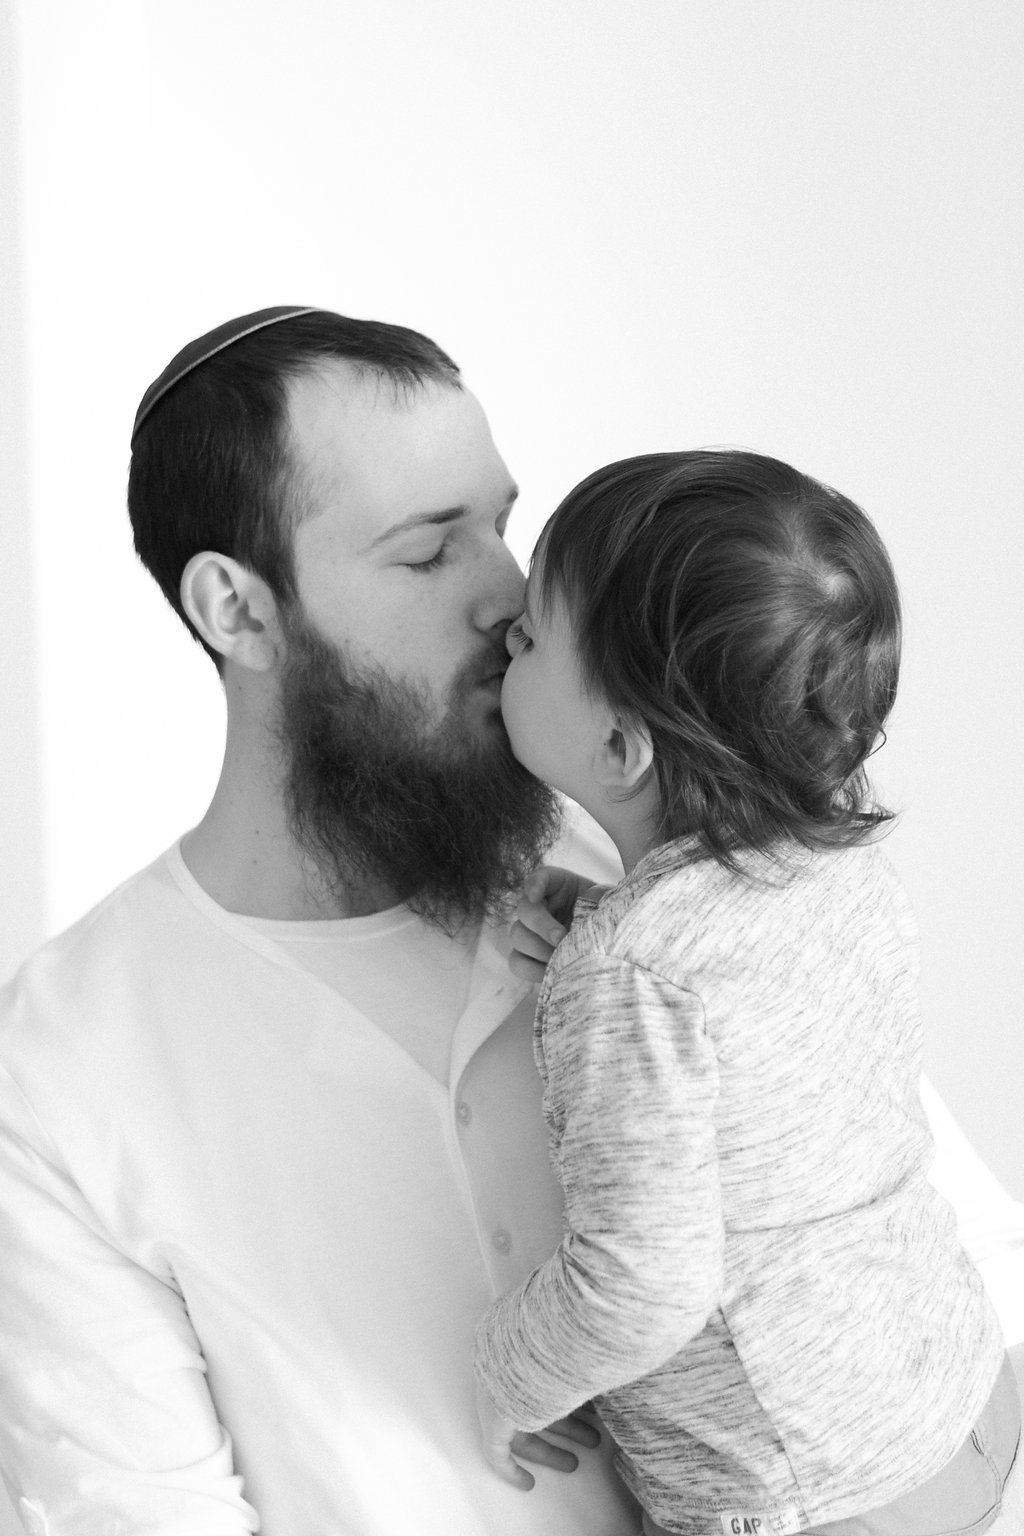 Dad kissing his older son while he jumps on the bed in black and white photo